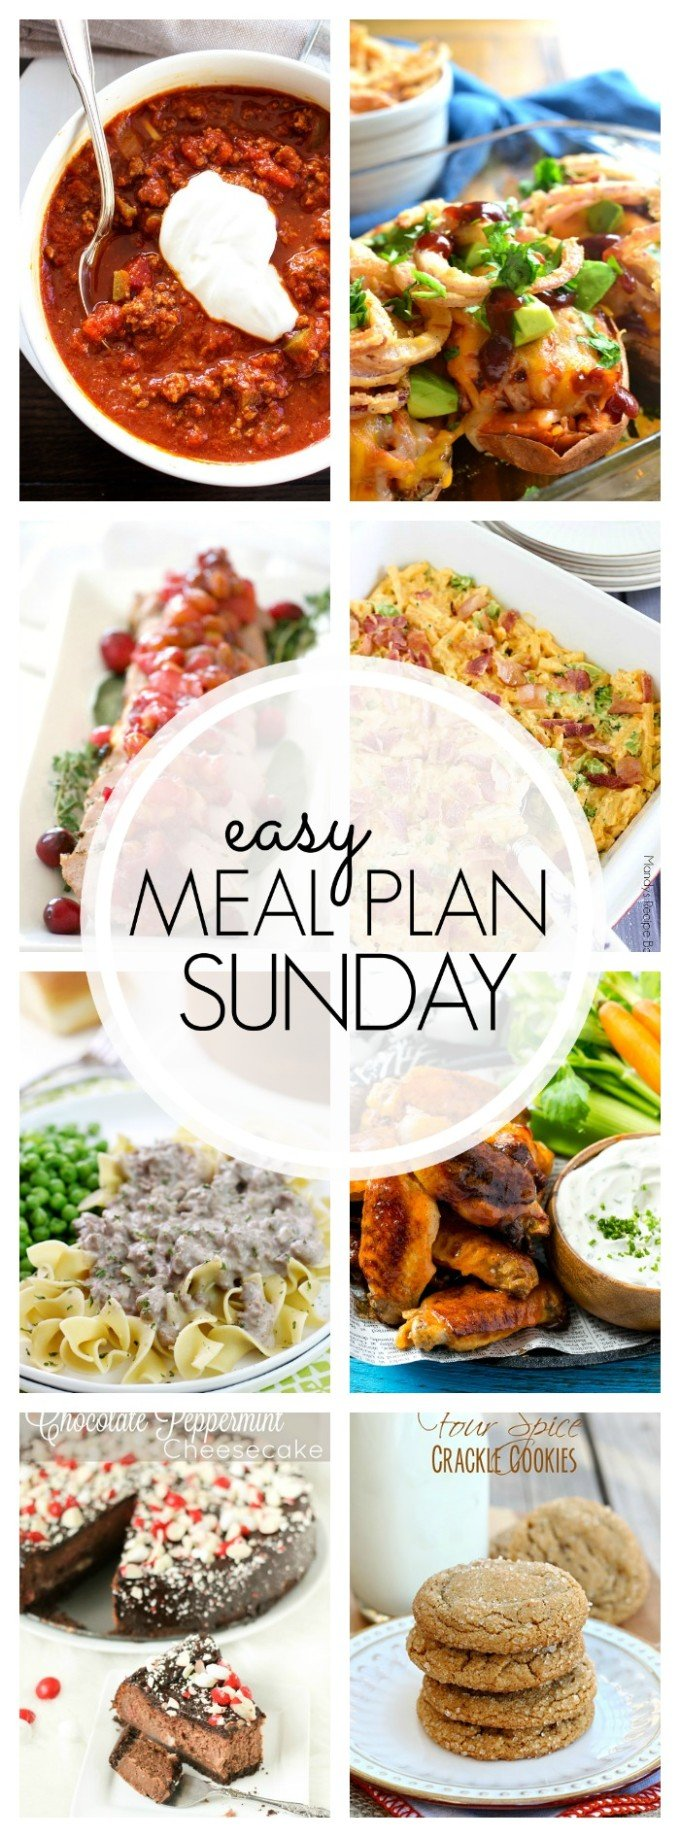 EASY MEAL PLAN – Week 78 - 7 delicious dinners and 2 desserts!